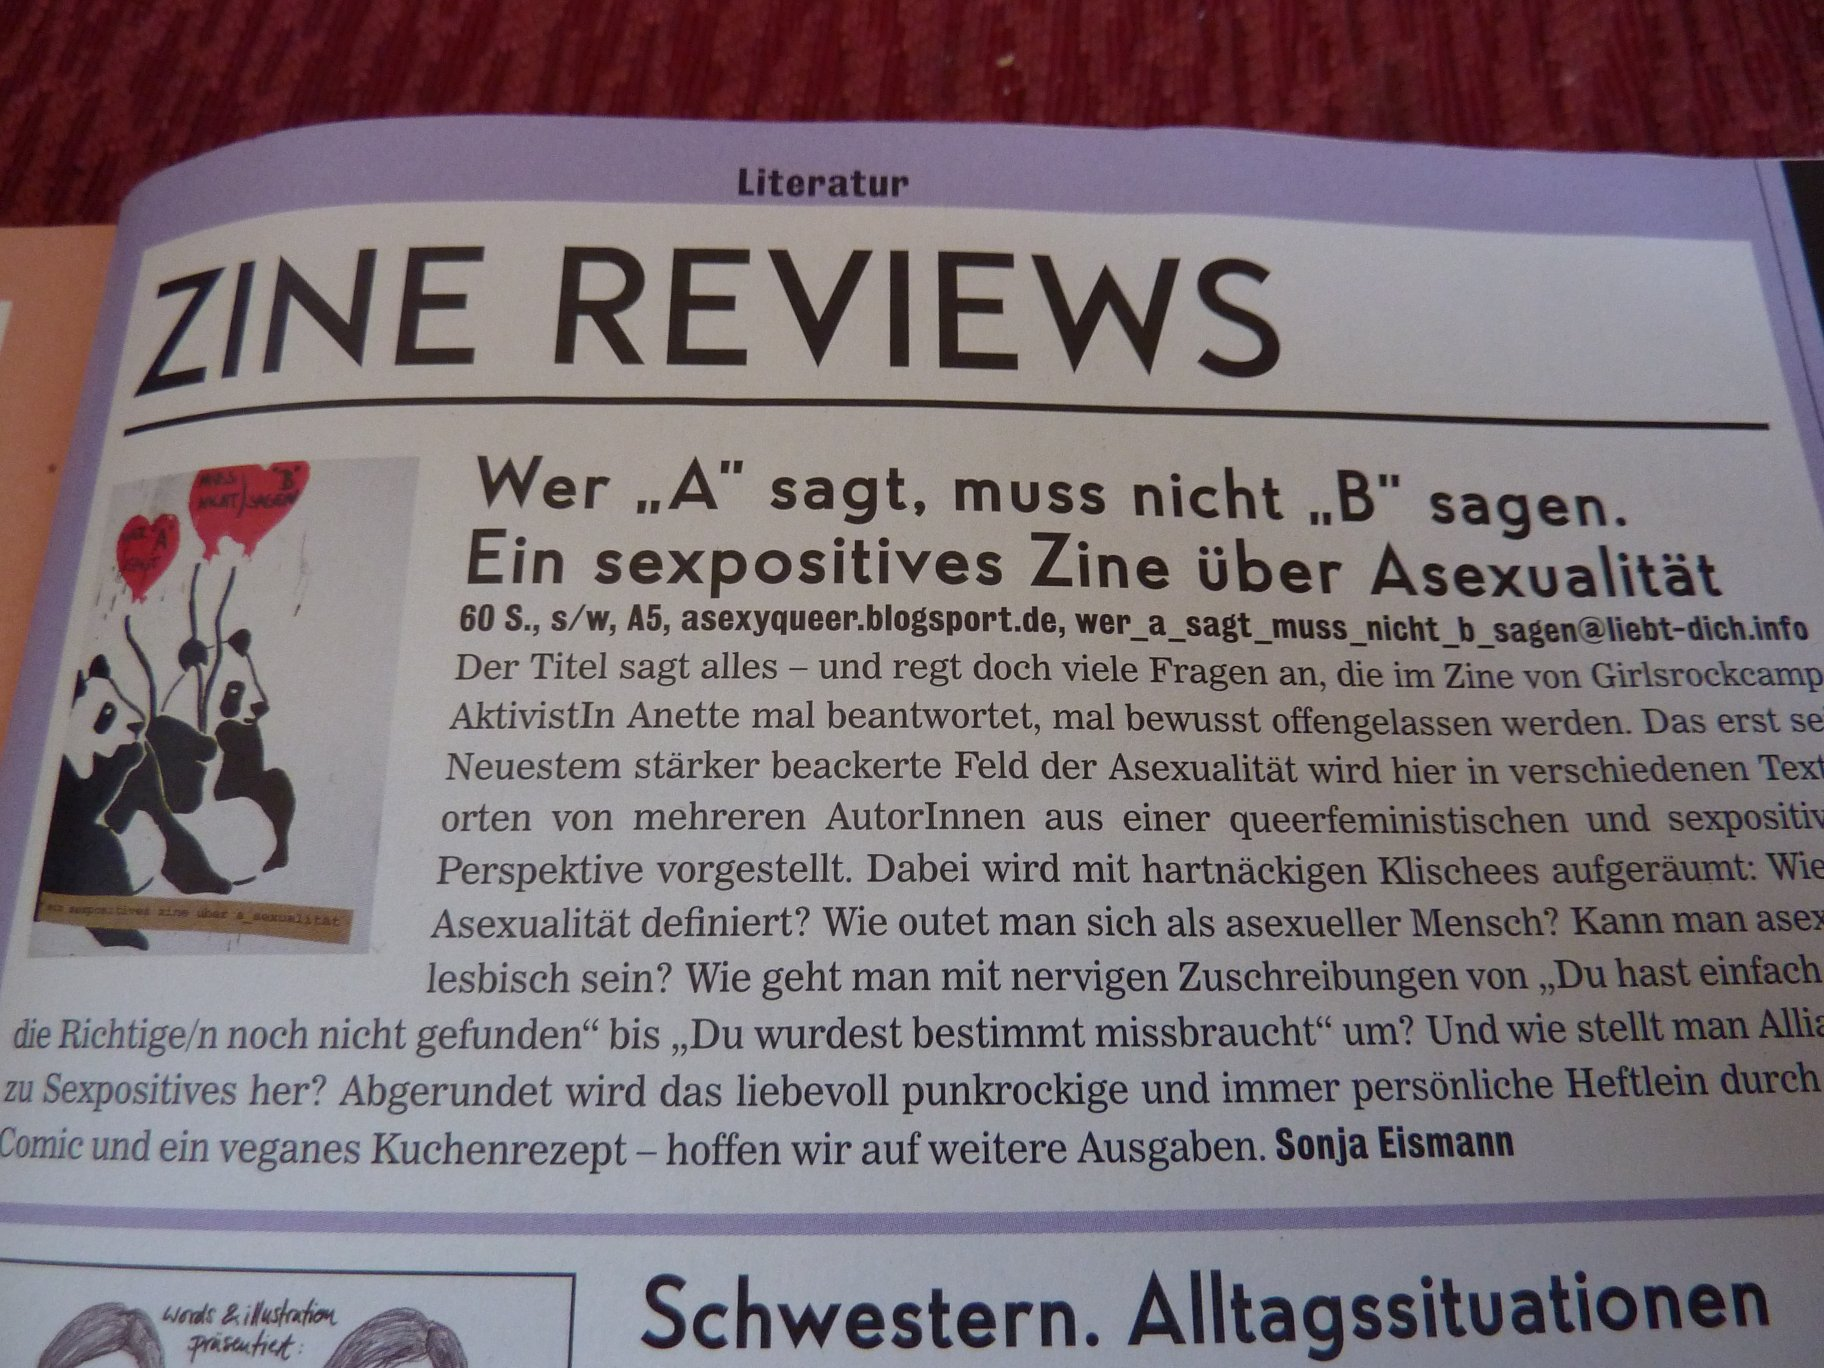 Zine Review im Missy Magazine 01/12